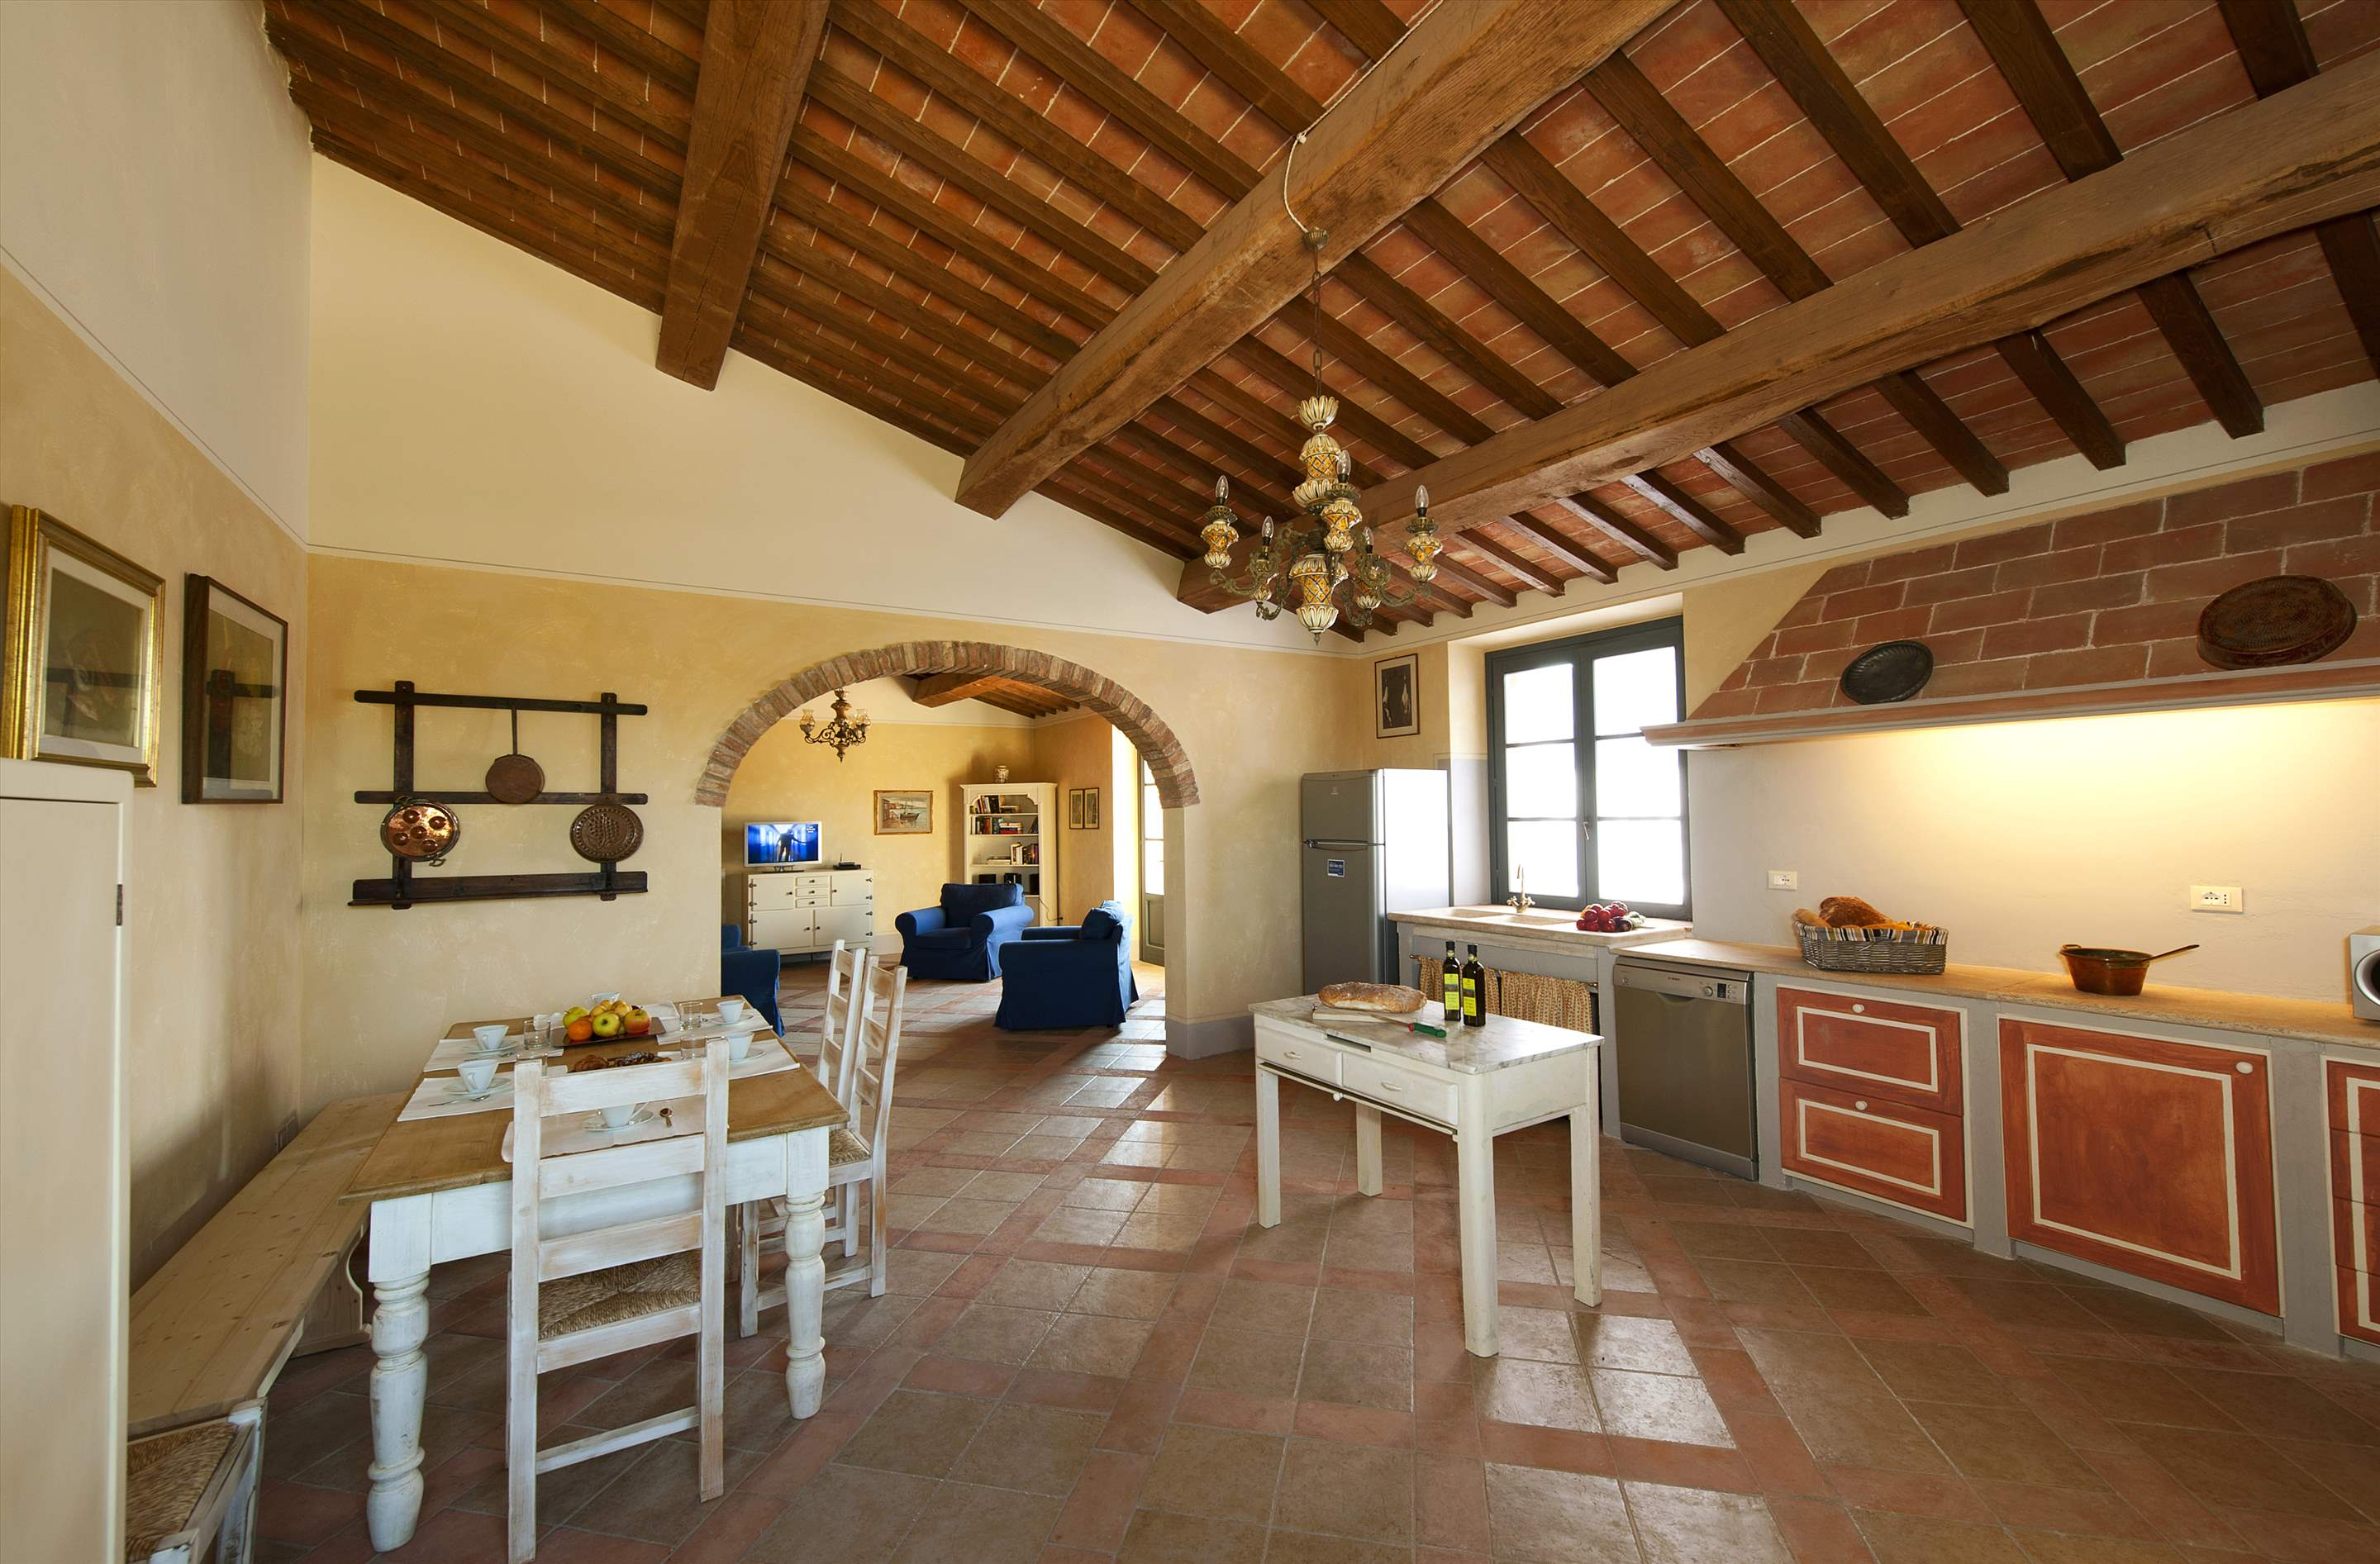 Podere Casacce, Ground Floor, 4 bedroom villa in Tuscany Coast, Tuscany Photo #14